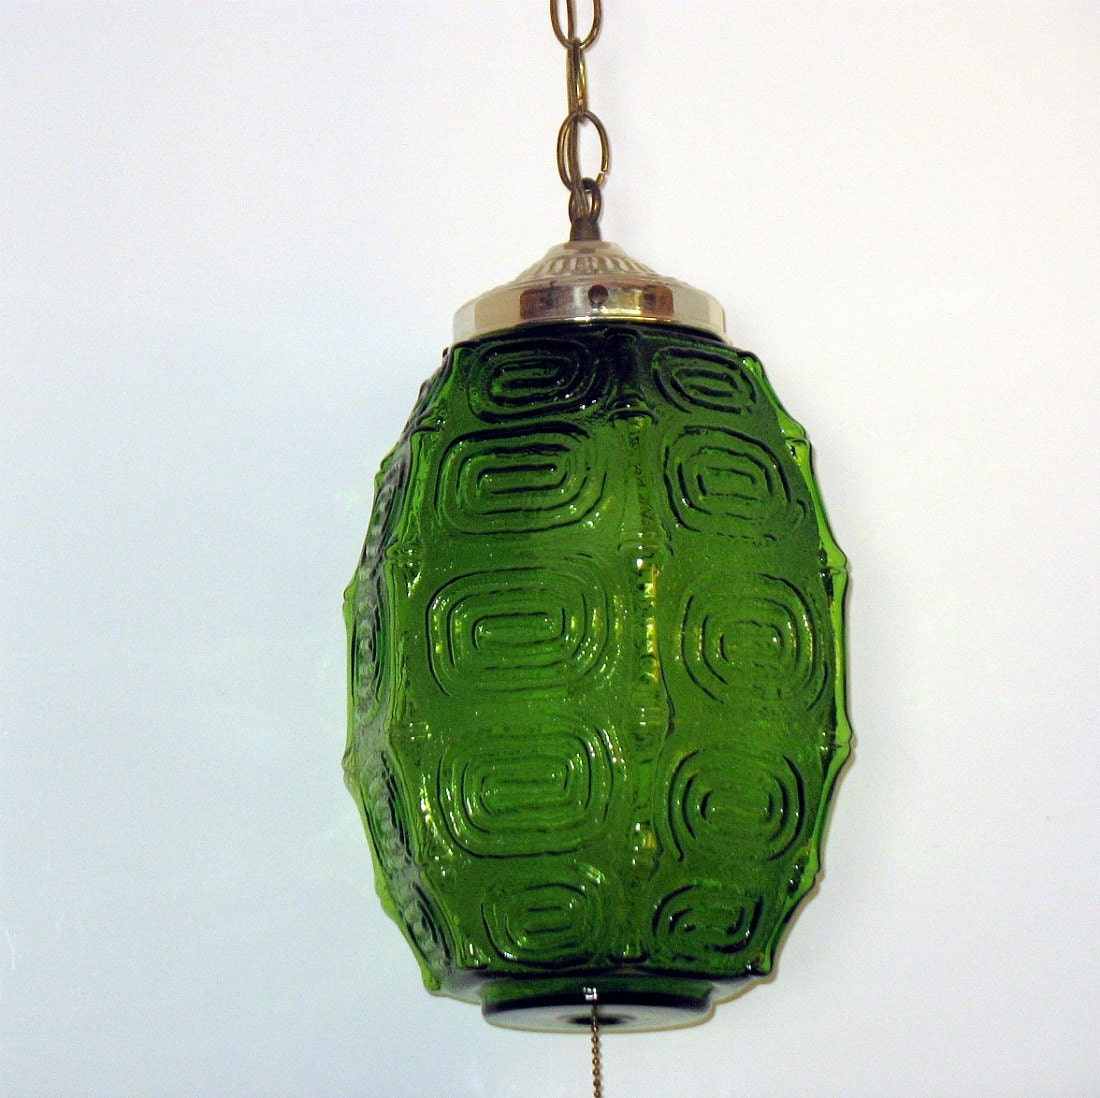 Vintage Green Glass Swag Lamp Light Ceiling Pendant Oval Melon